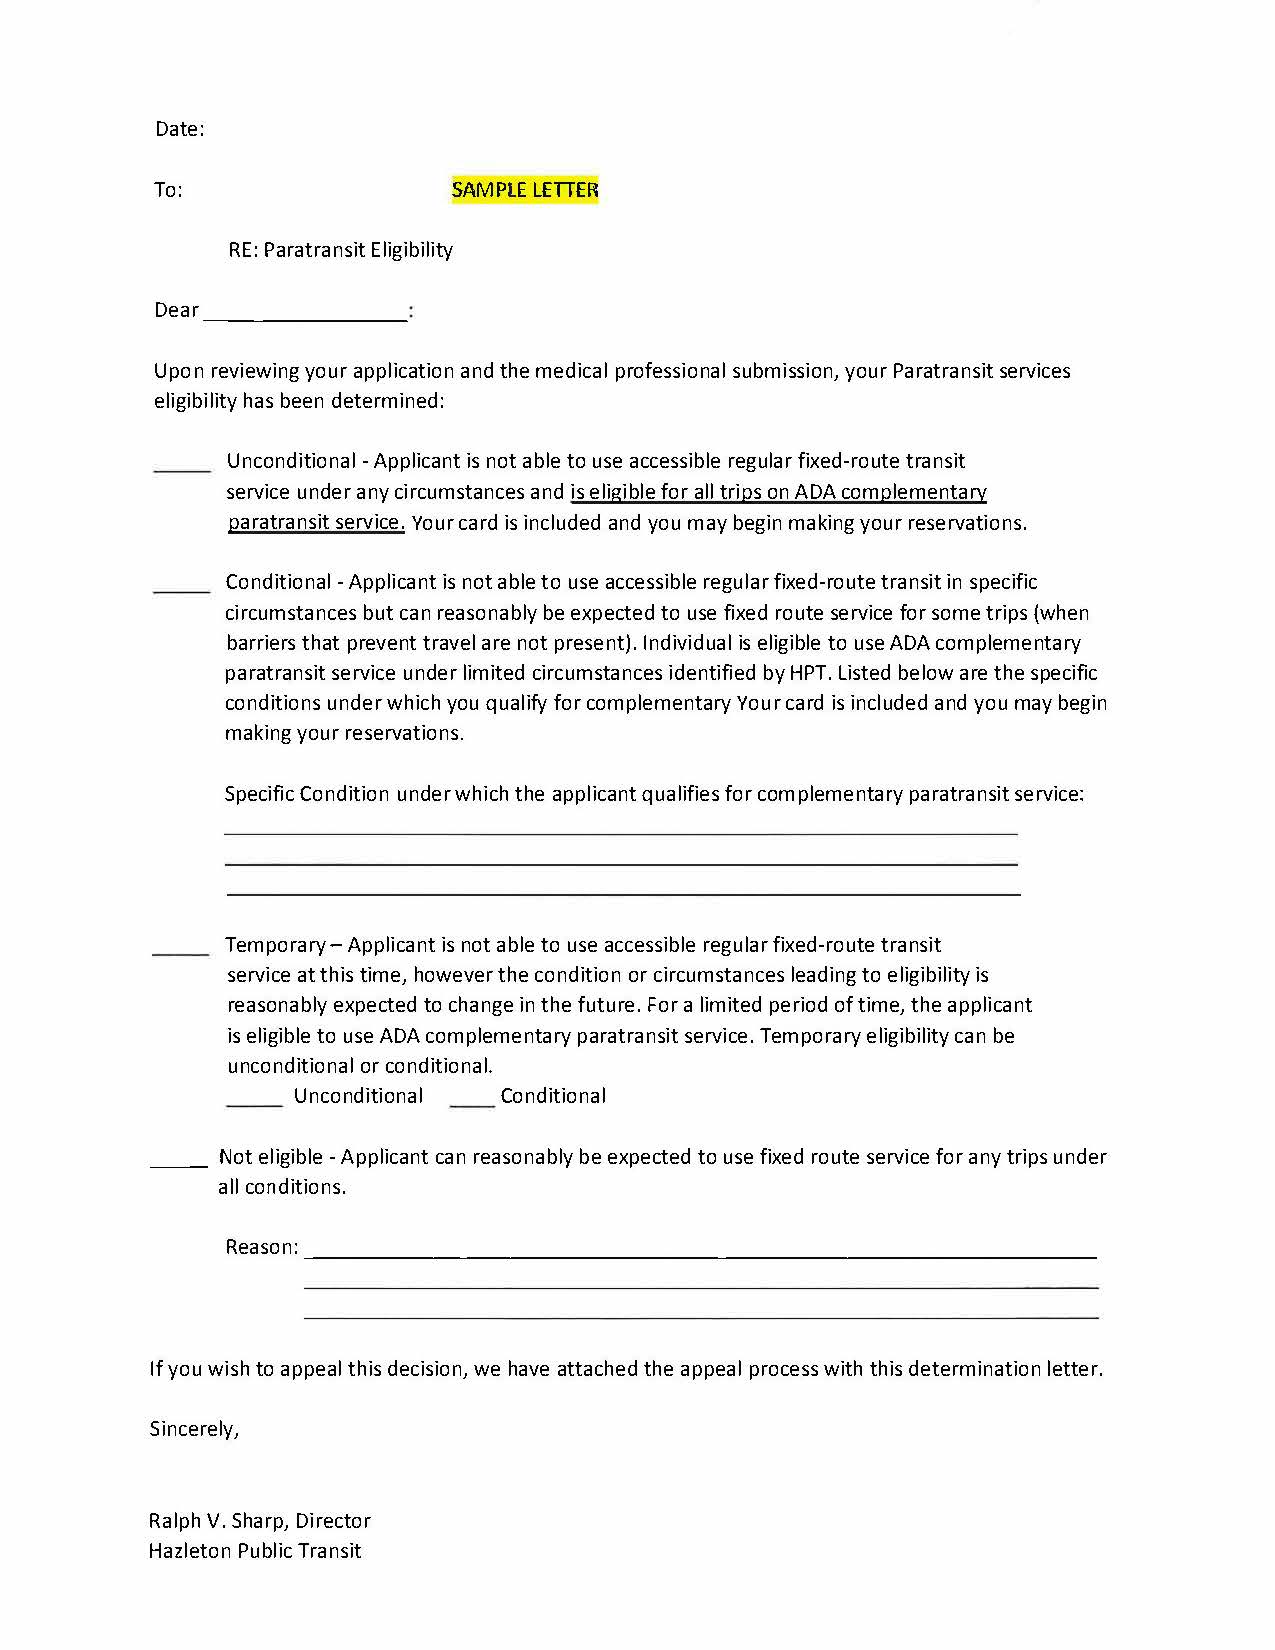 Paratransit Service Sample Letter